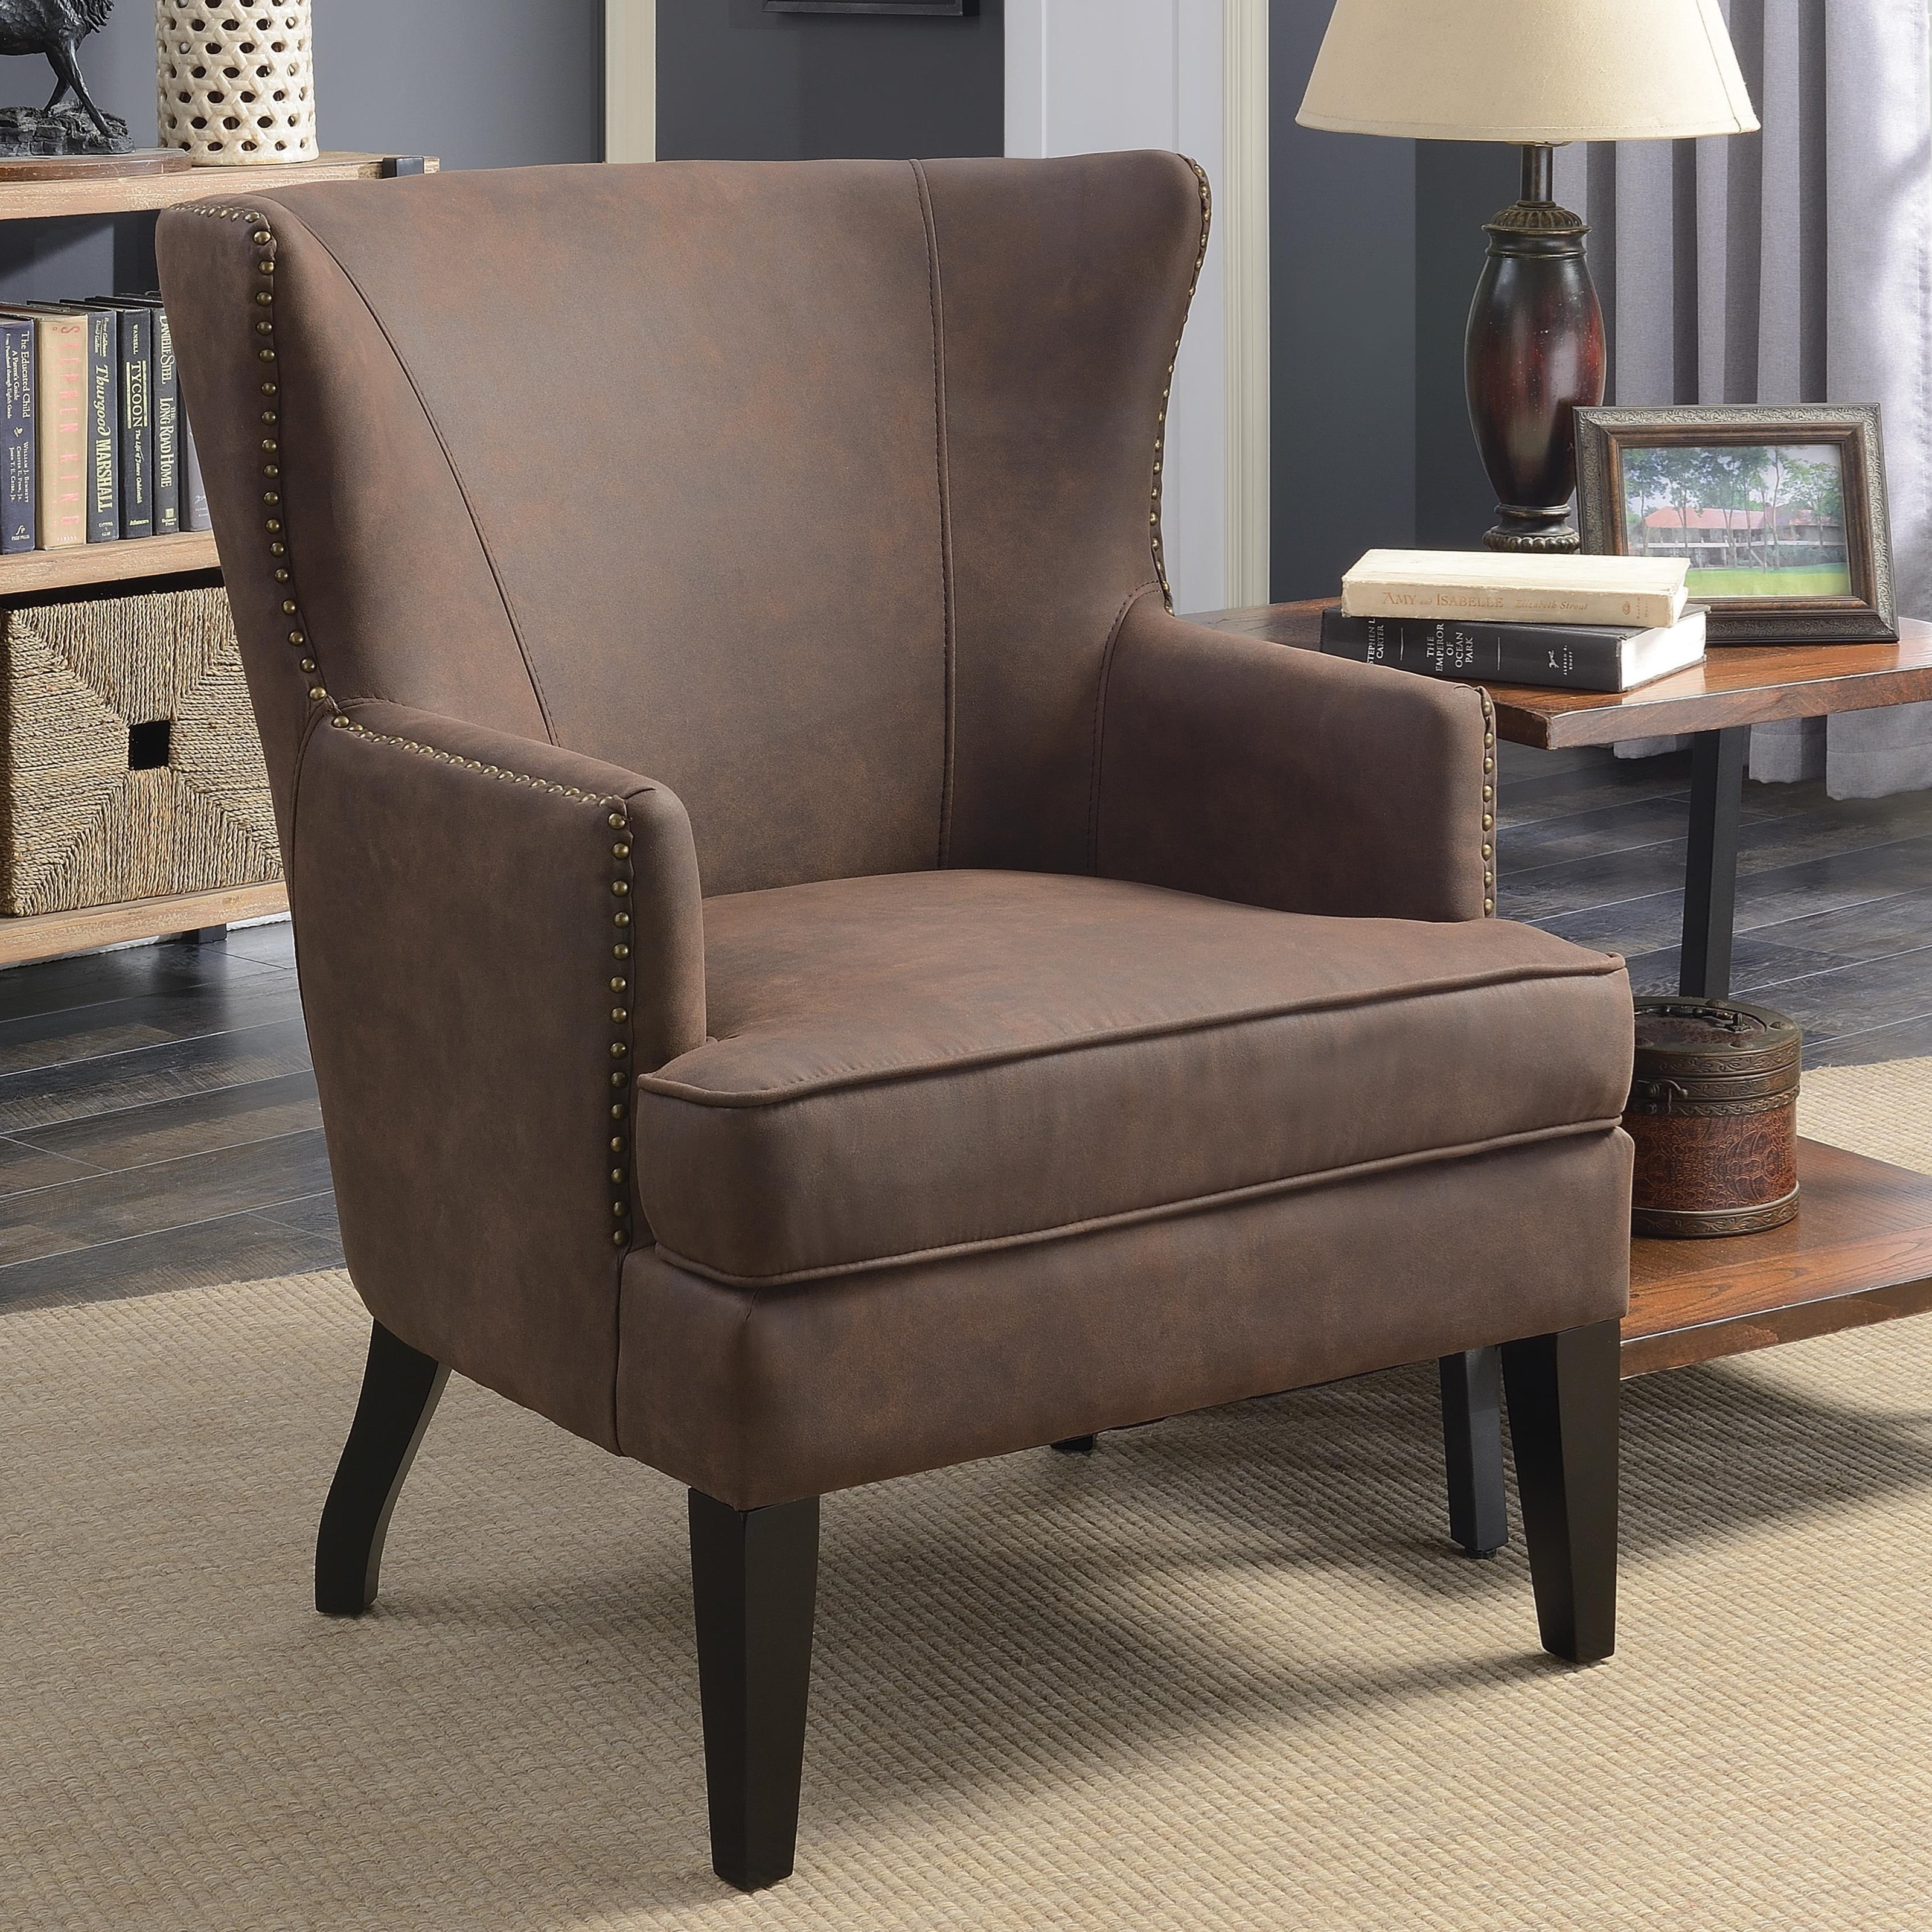 Coaster Accent Seating Accent Chair With Winged Back